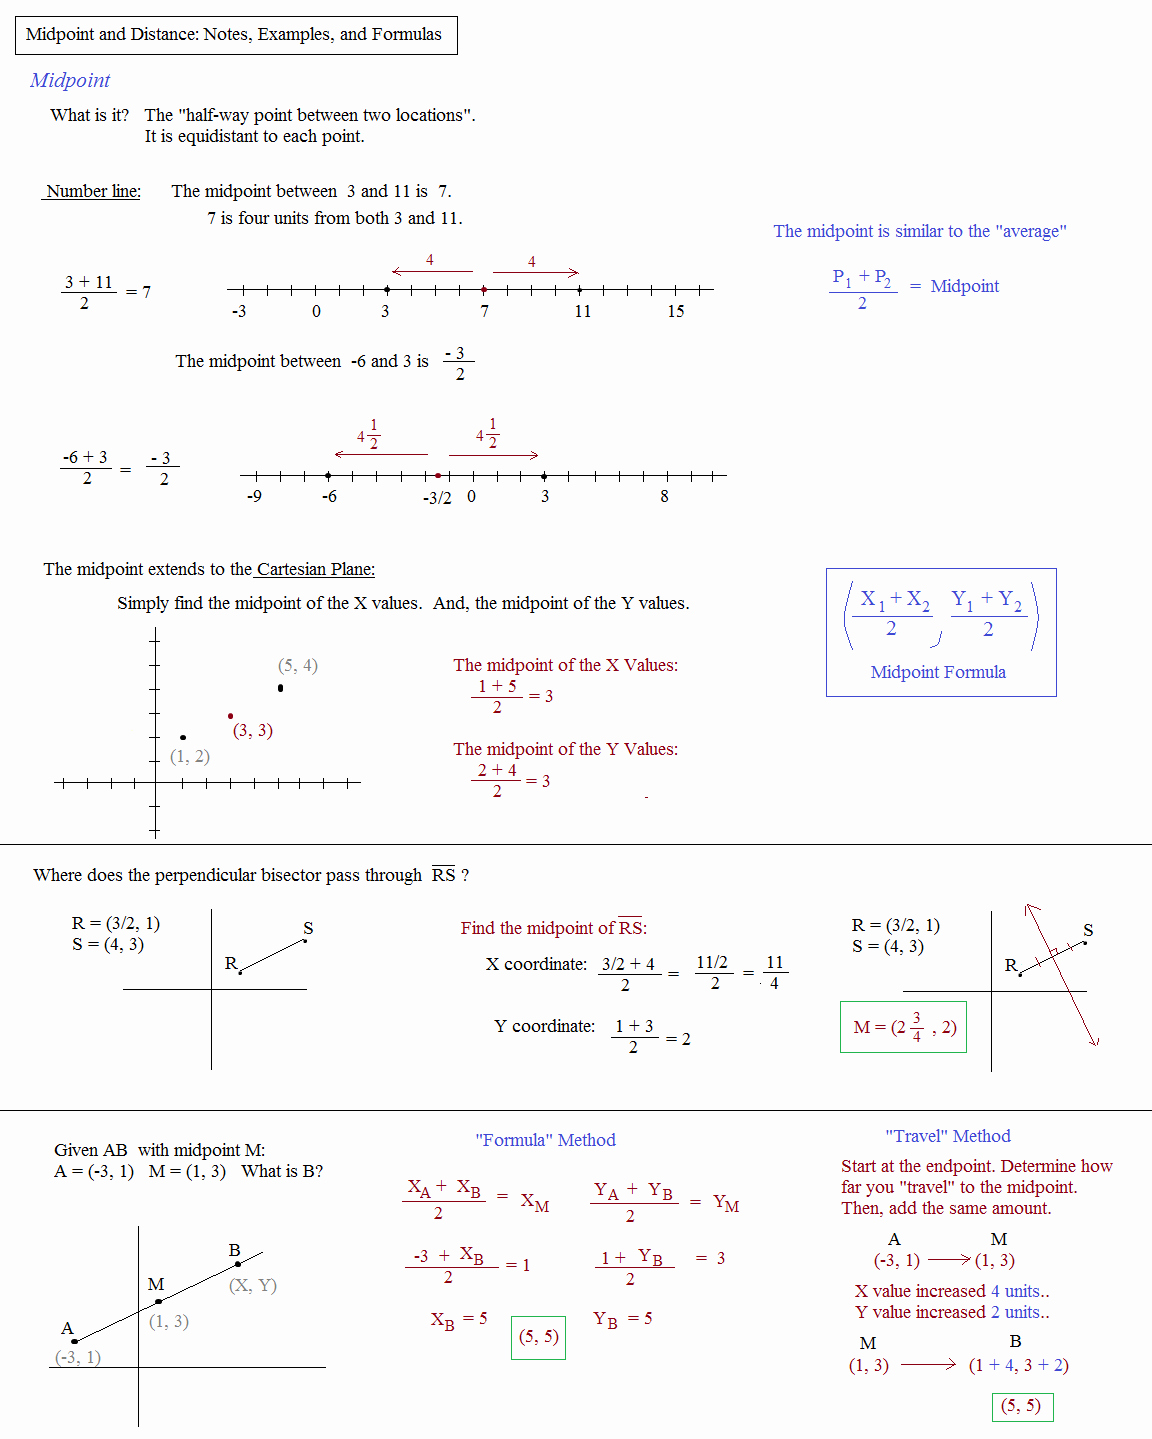 Distance formula Worksheet Geometry Awesome Math Plane Midpoint and Distance